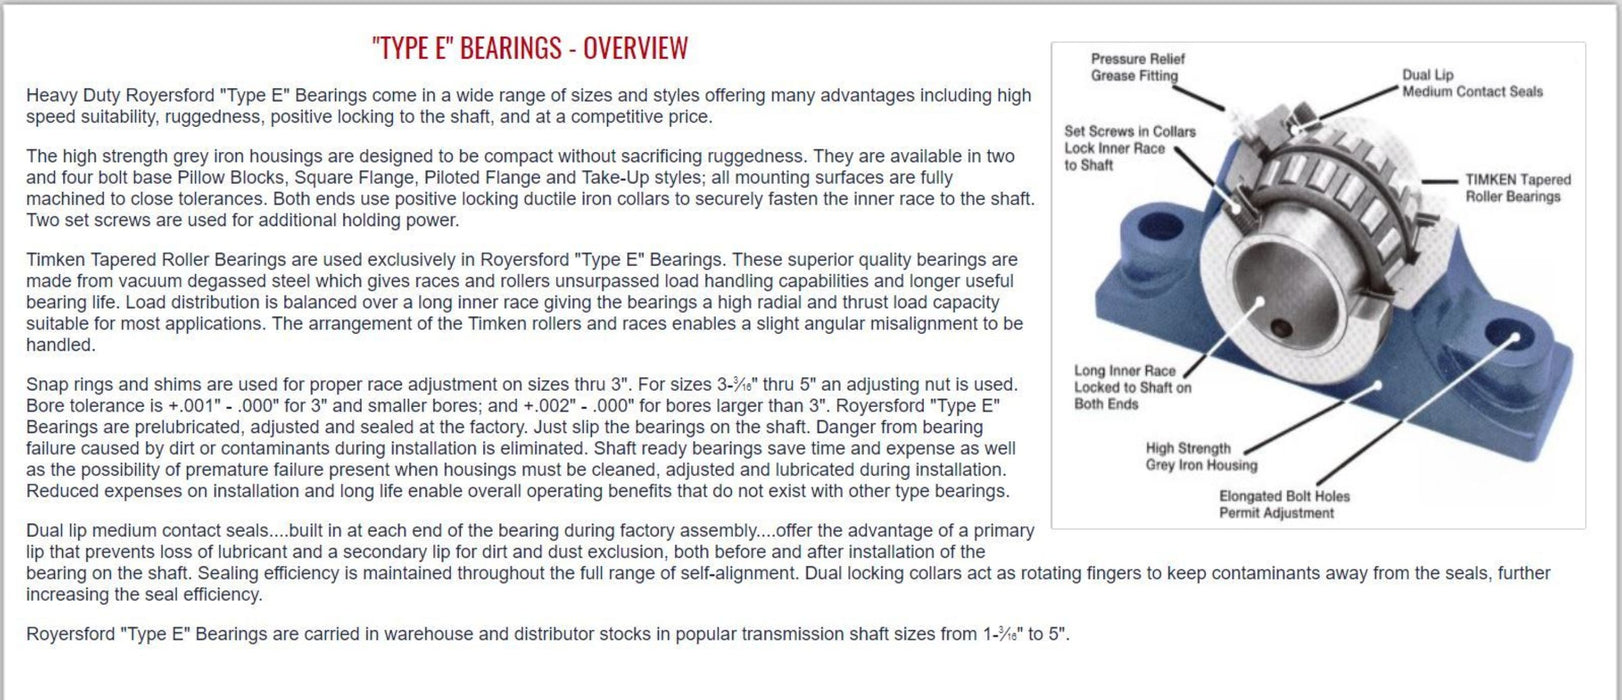 20-05-0300, ROYERSFORD TYPE E 4 Bolt Square Flange Bearing, 3 with Timken Tapered Roller Bearings